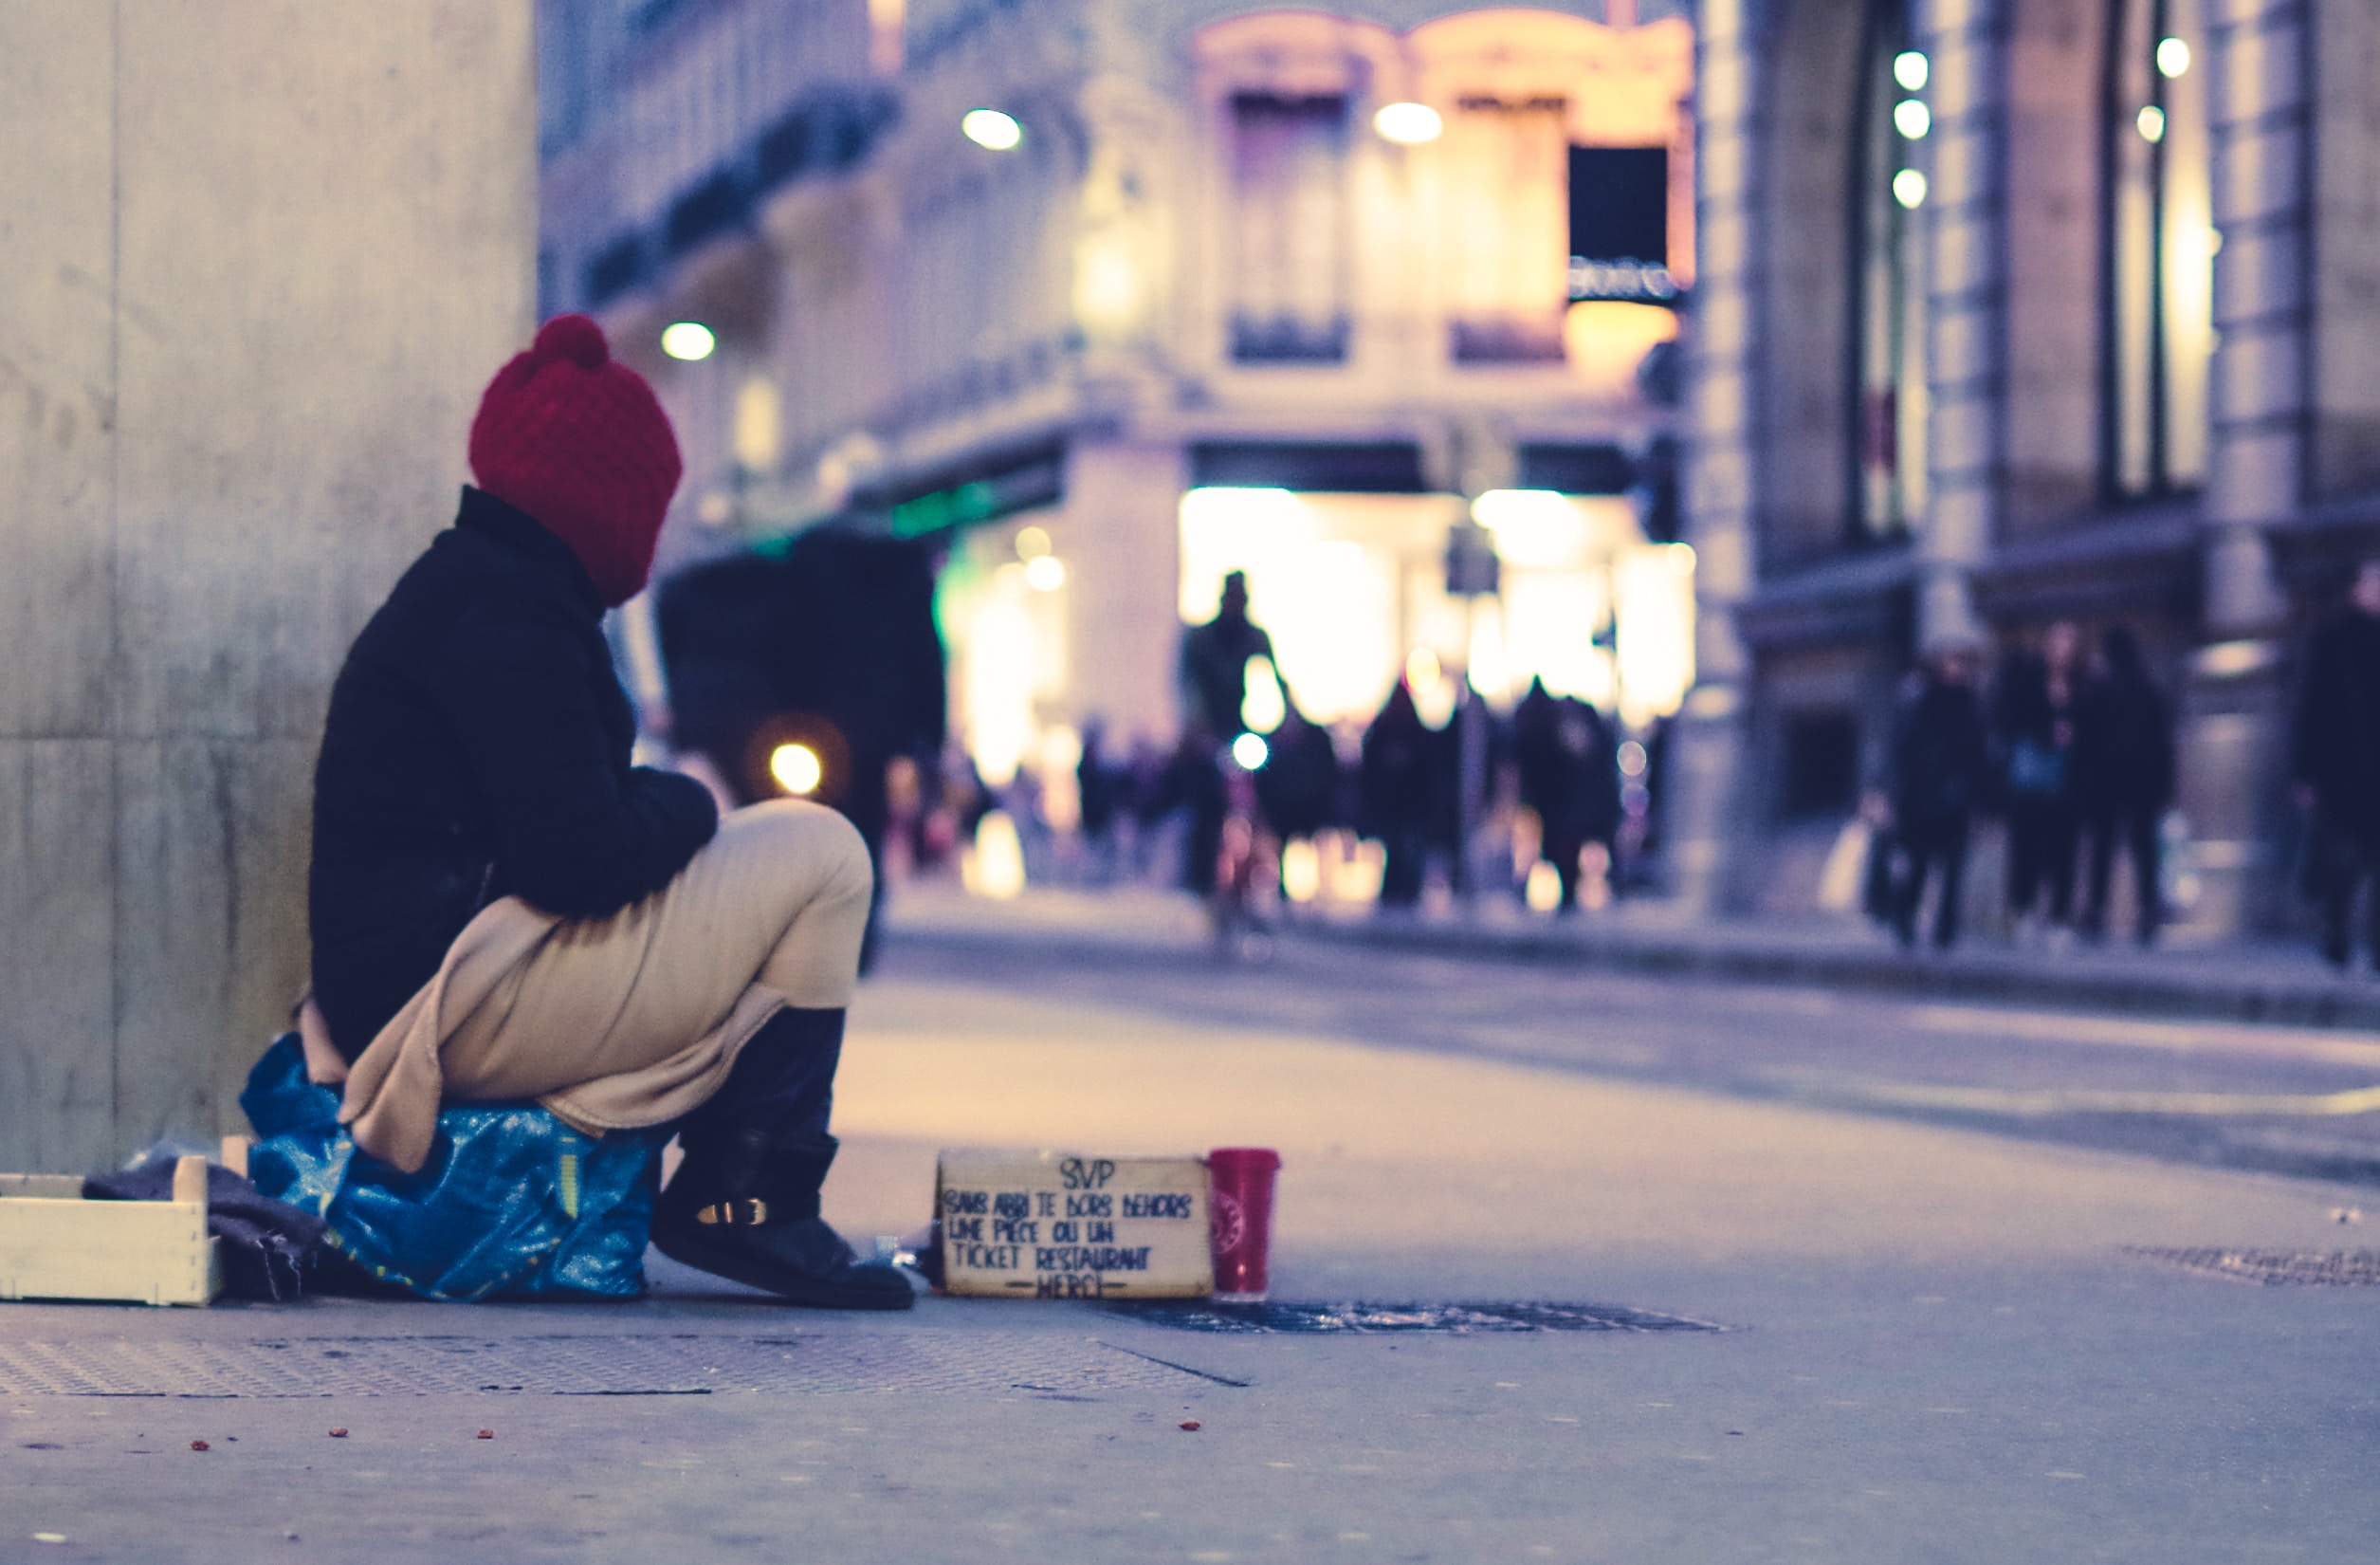 Thumb image for the post on Homelessness and Addiction